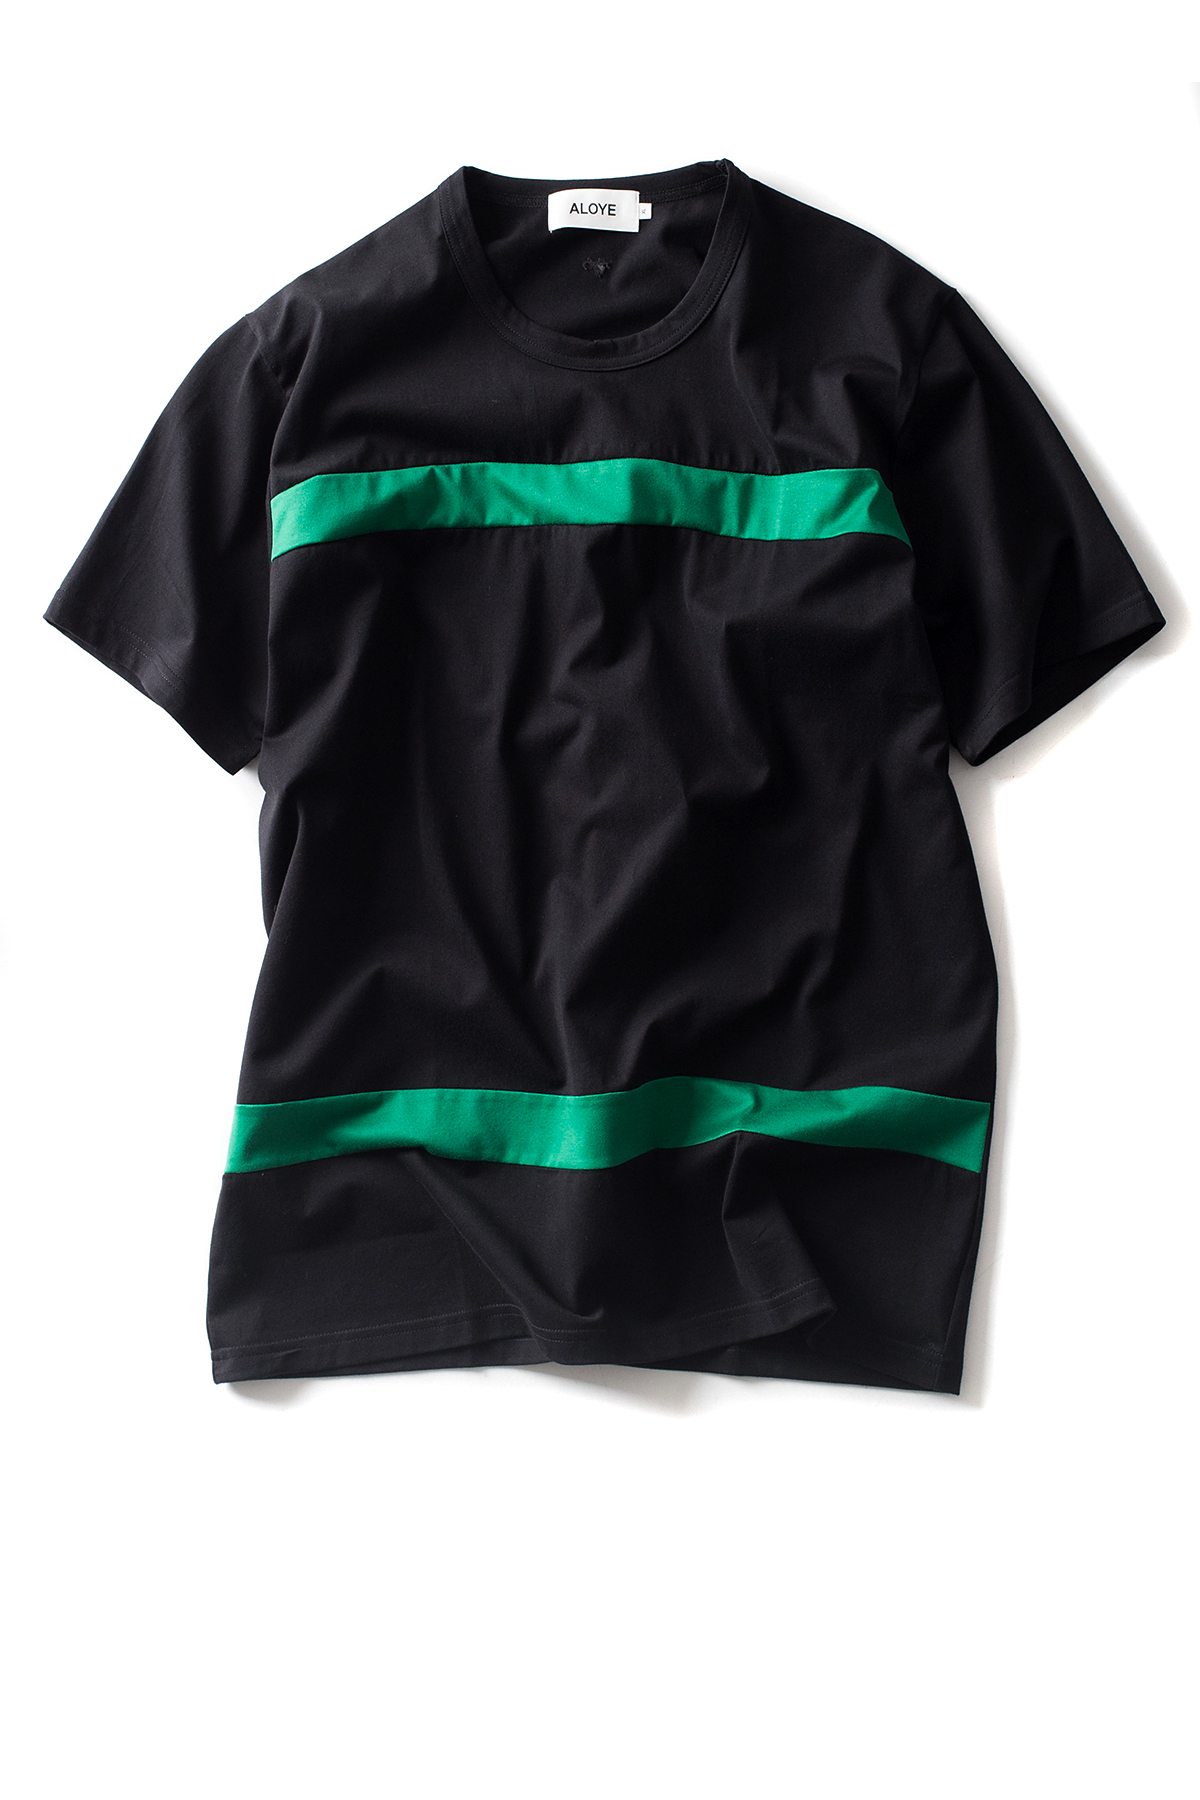 ALOYE : Color Blocks - Short Sleeve T-Shirt (Black / Green)